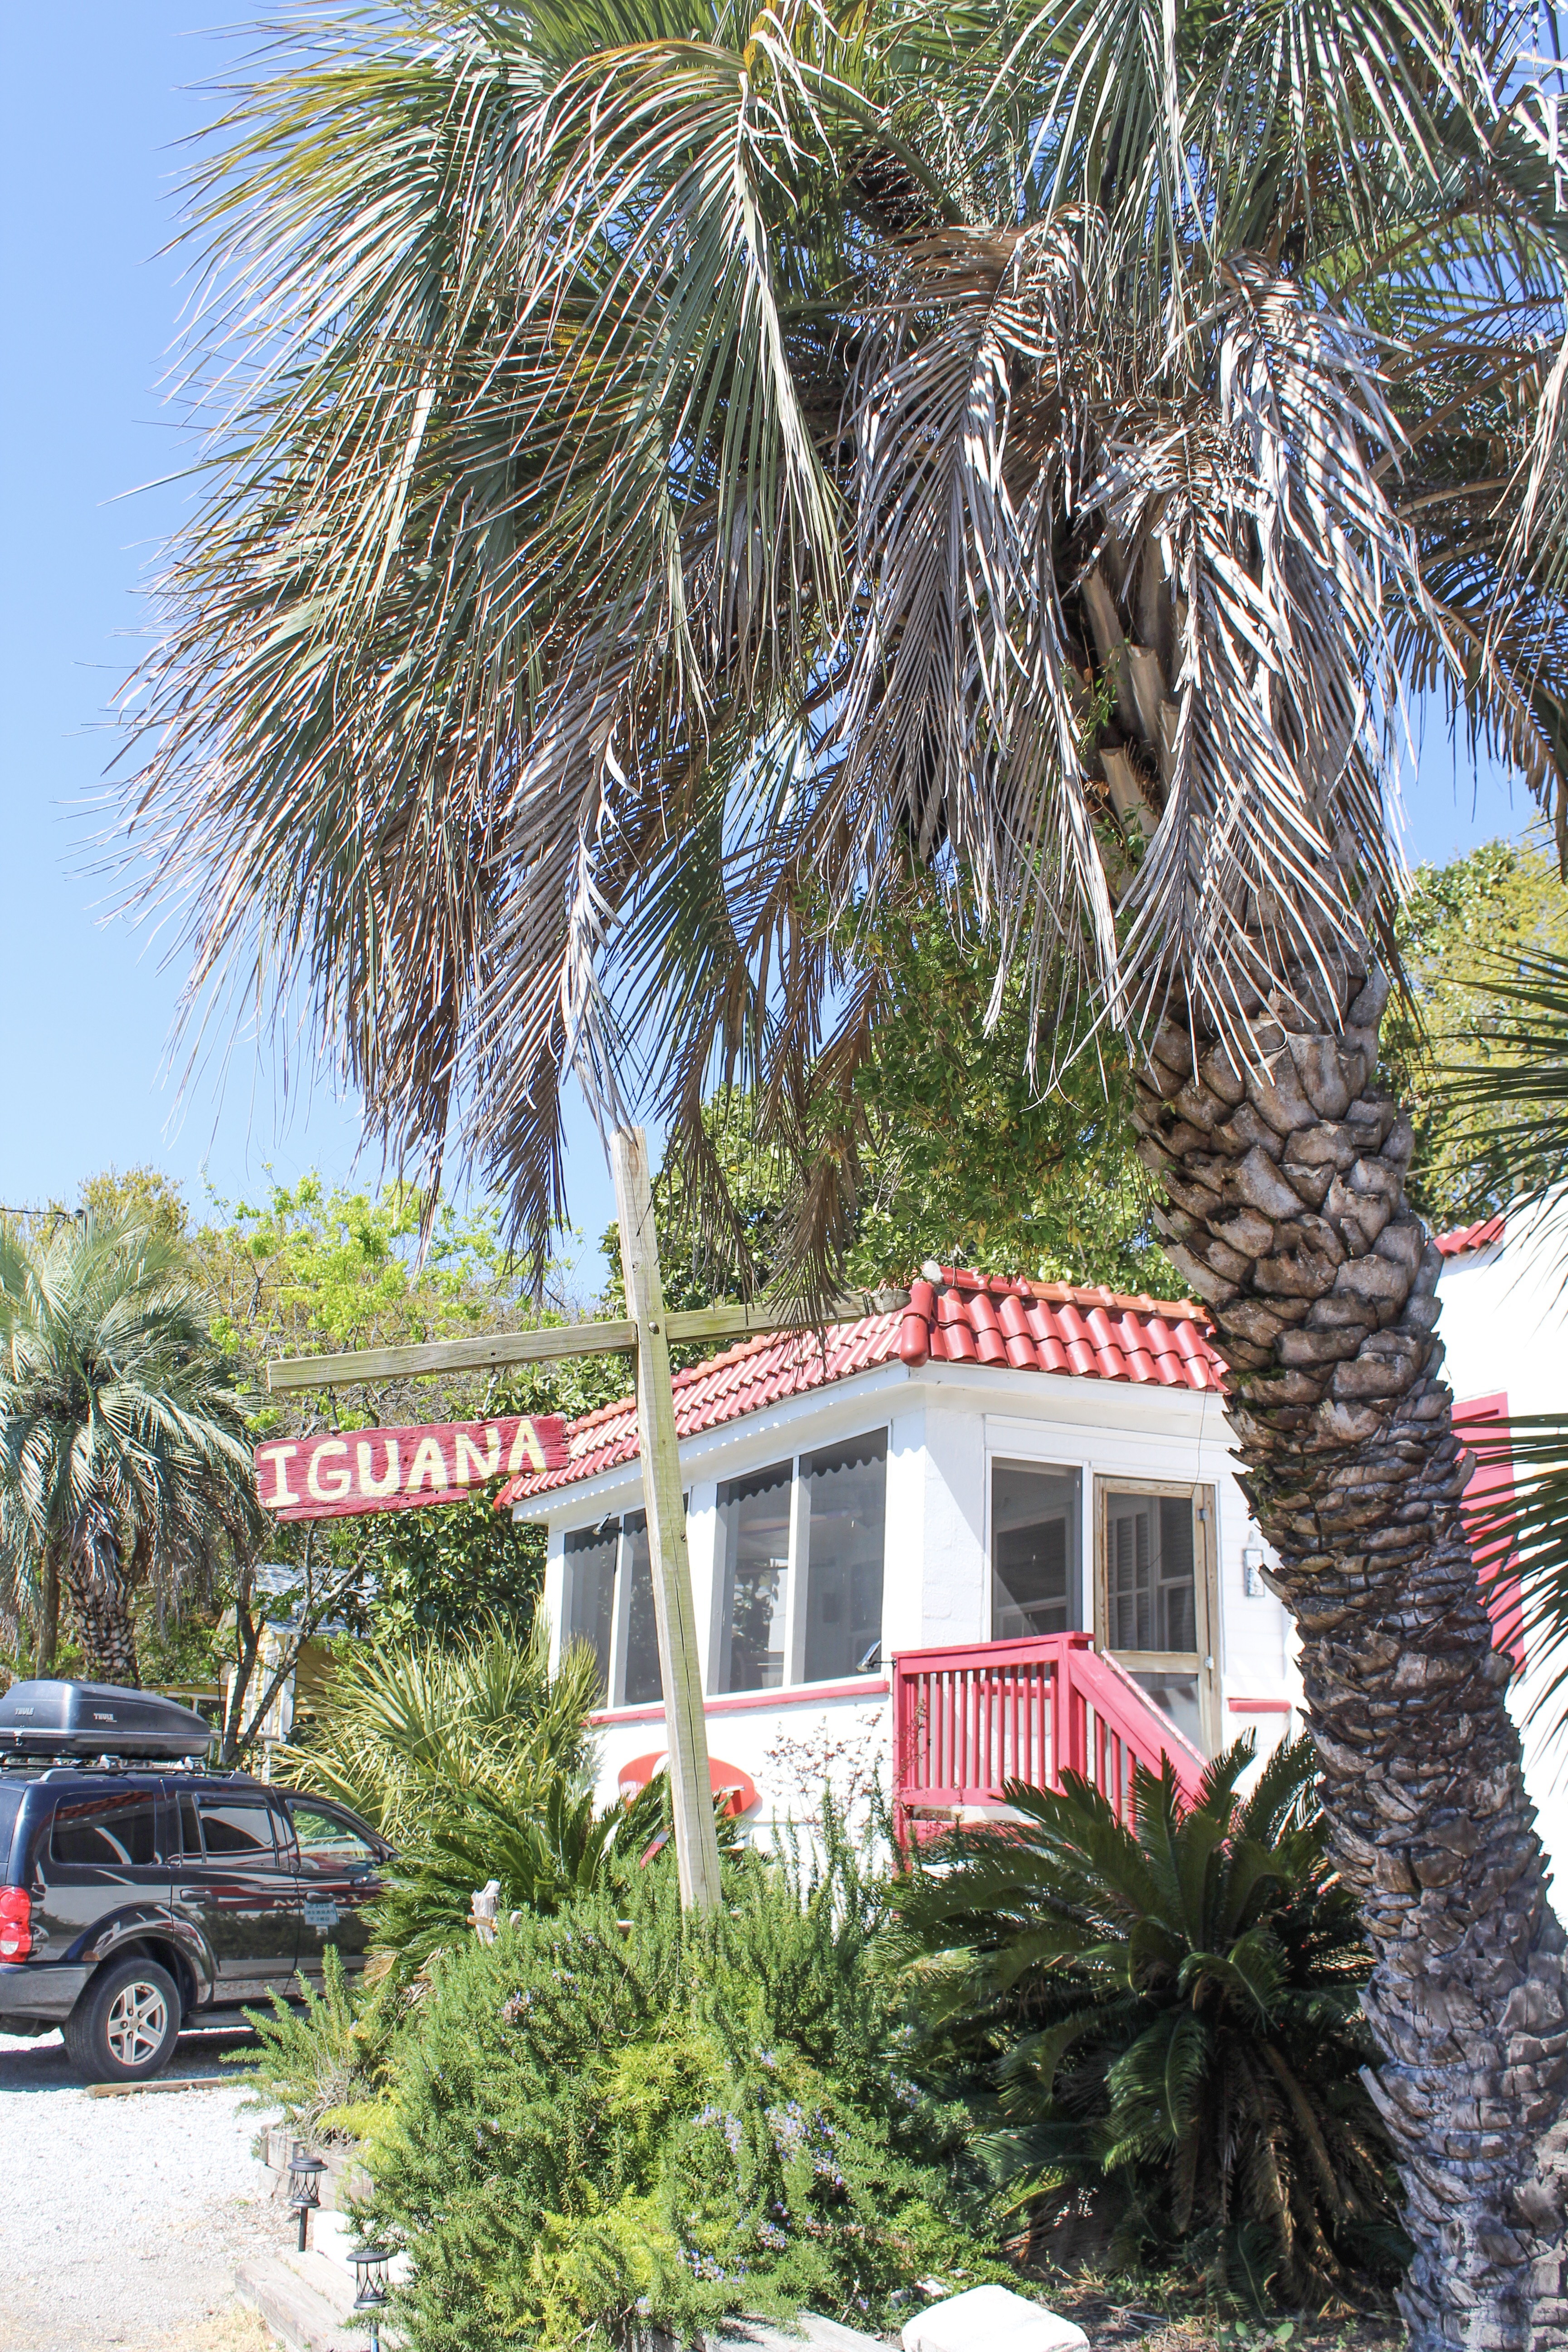 Travel Guide: Folly Beach, South Carolina